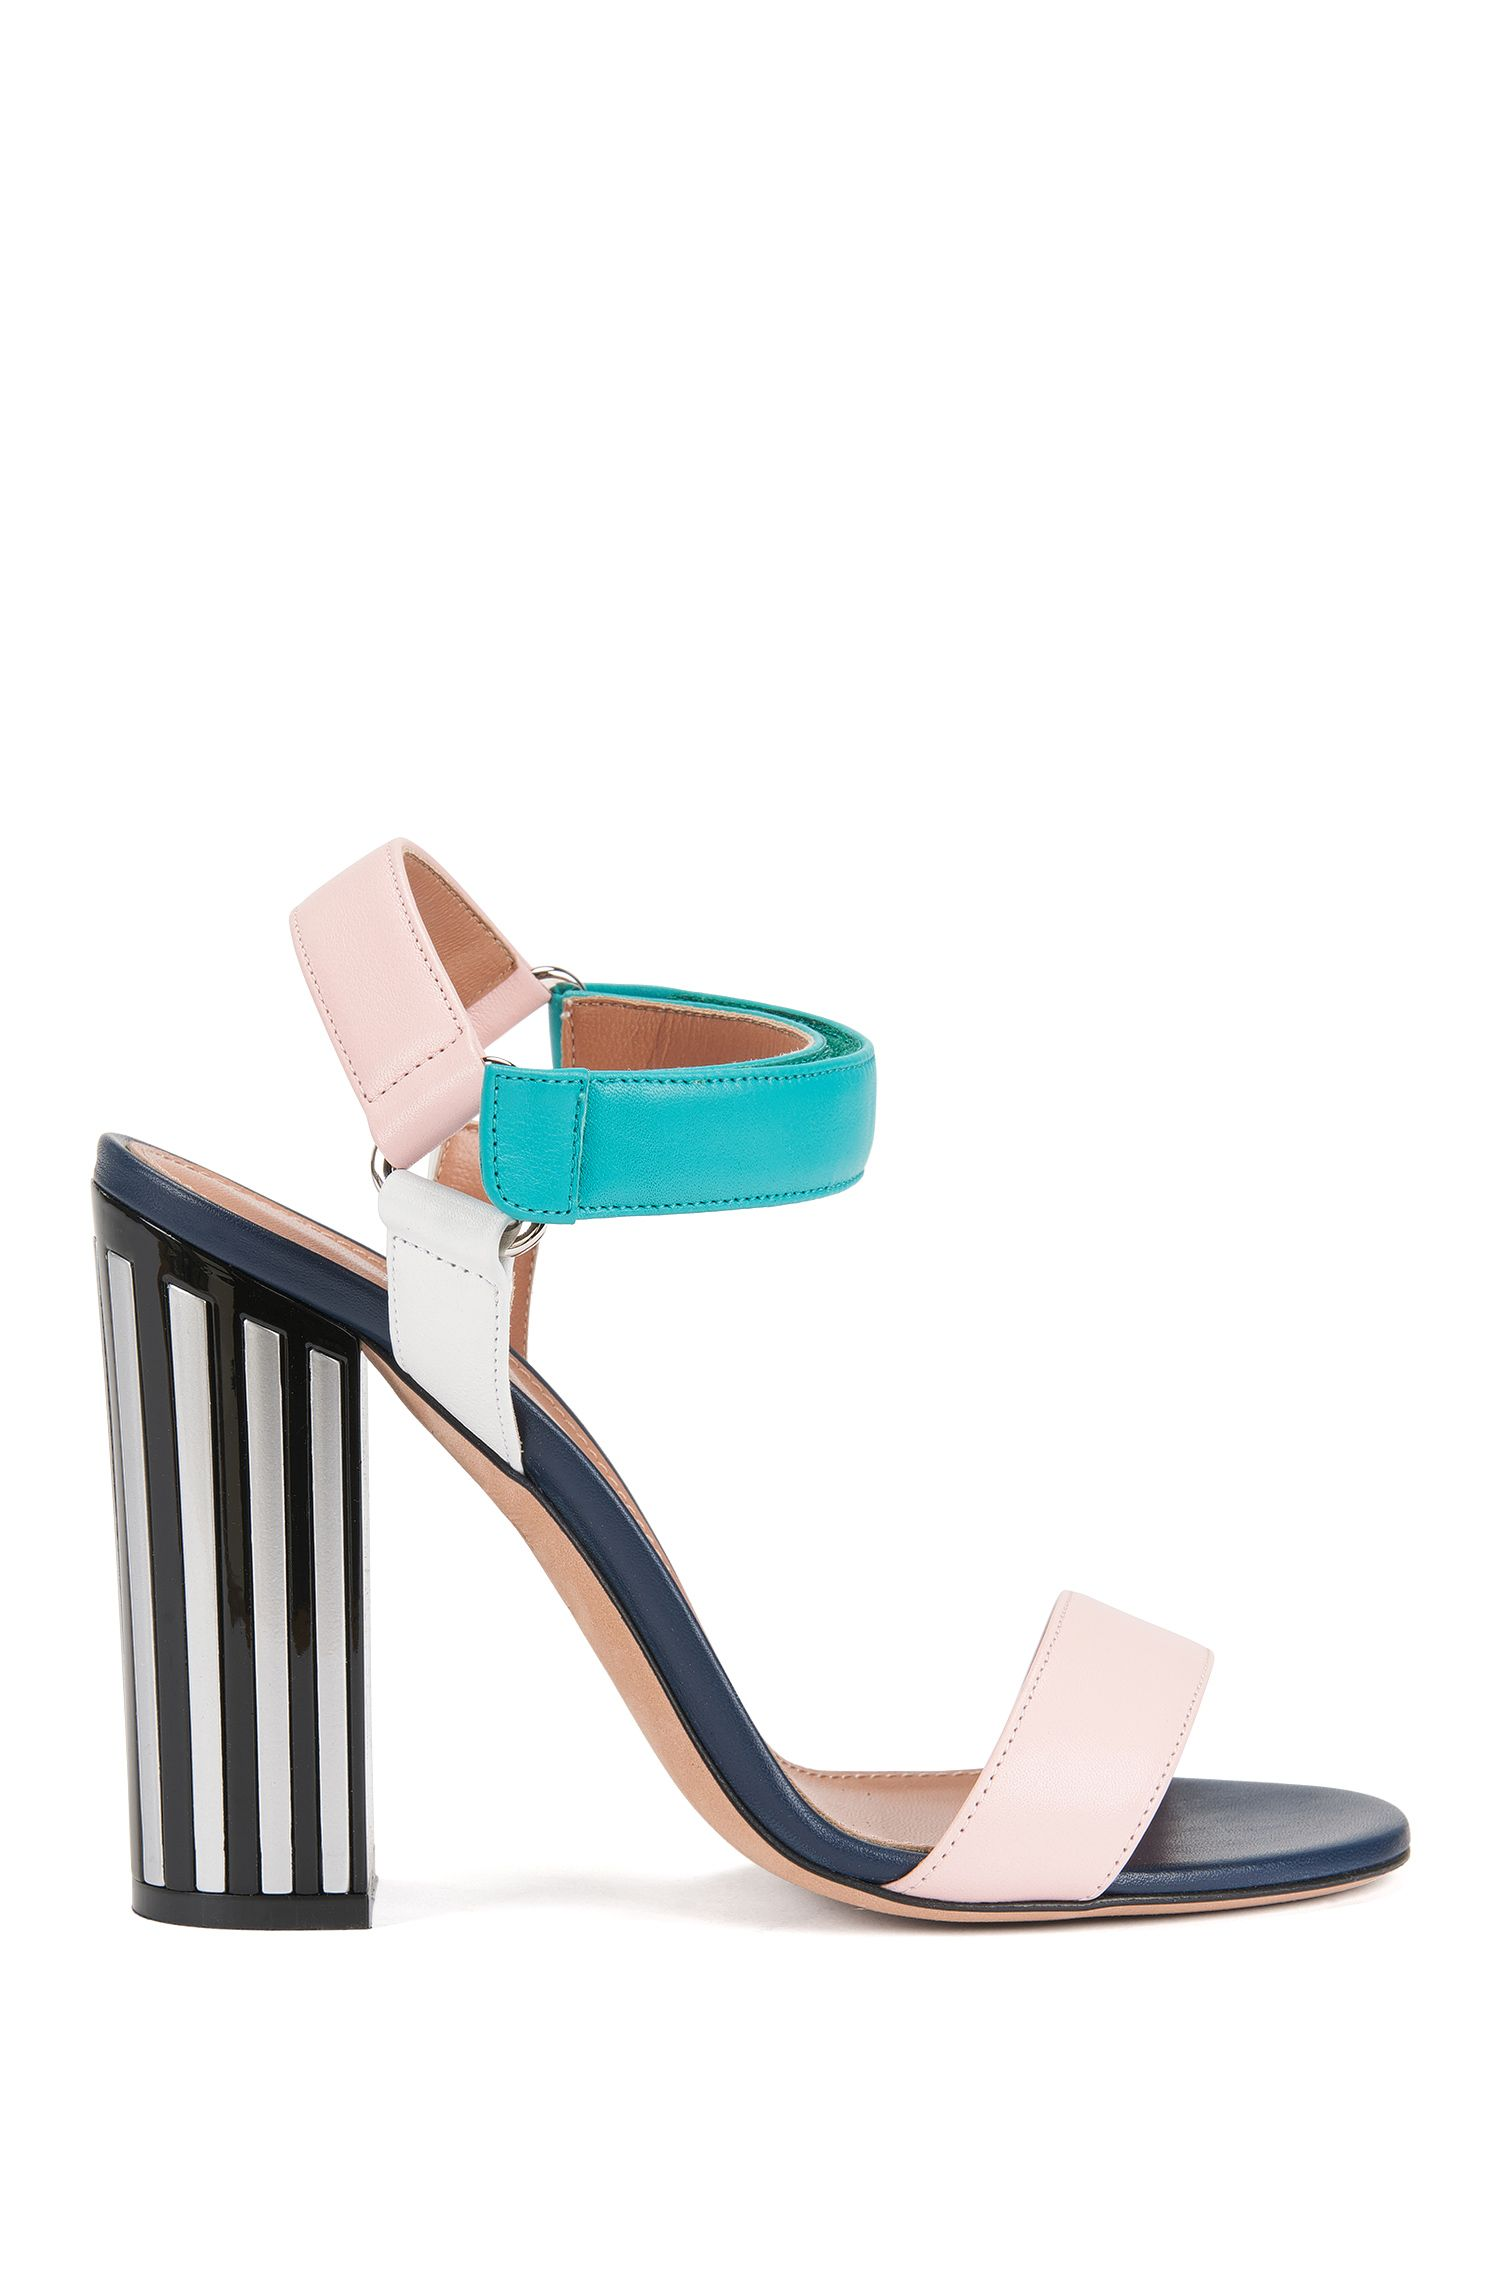 Gallery Collection Italian Leather Sandal | Sandal 100 GC